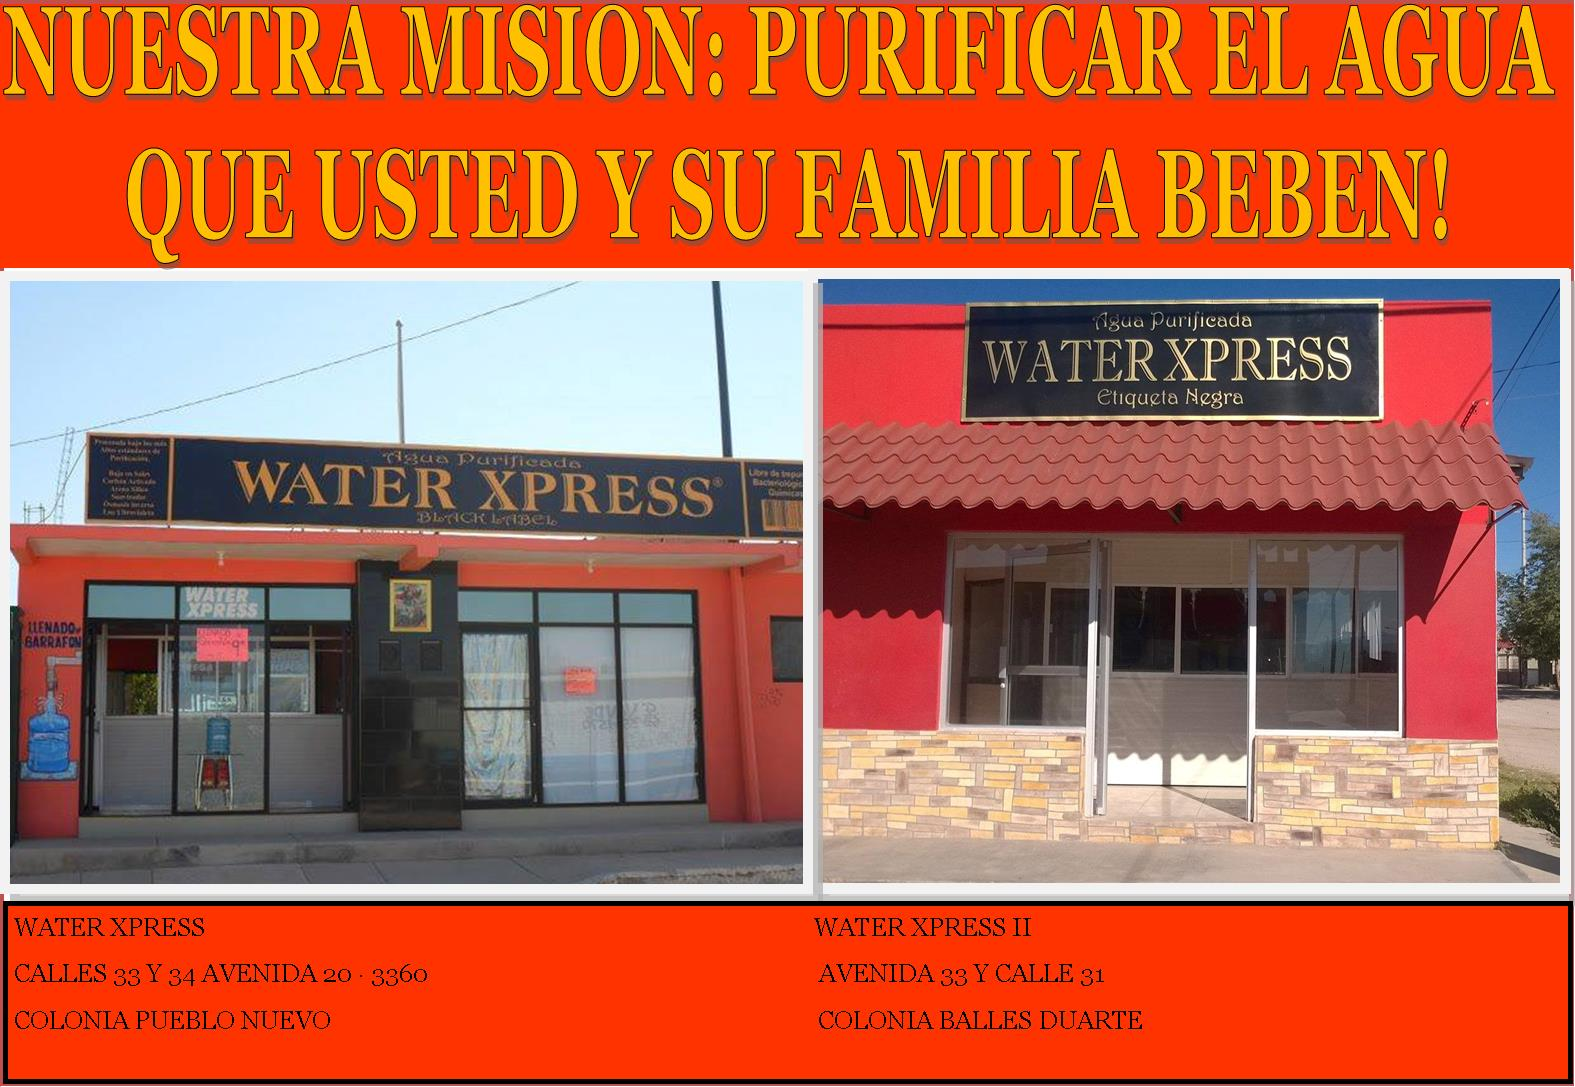 WATER XPRESS